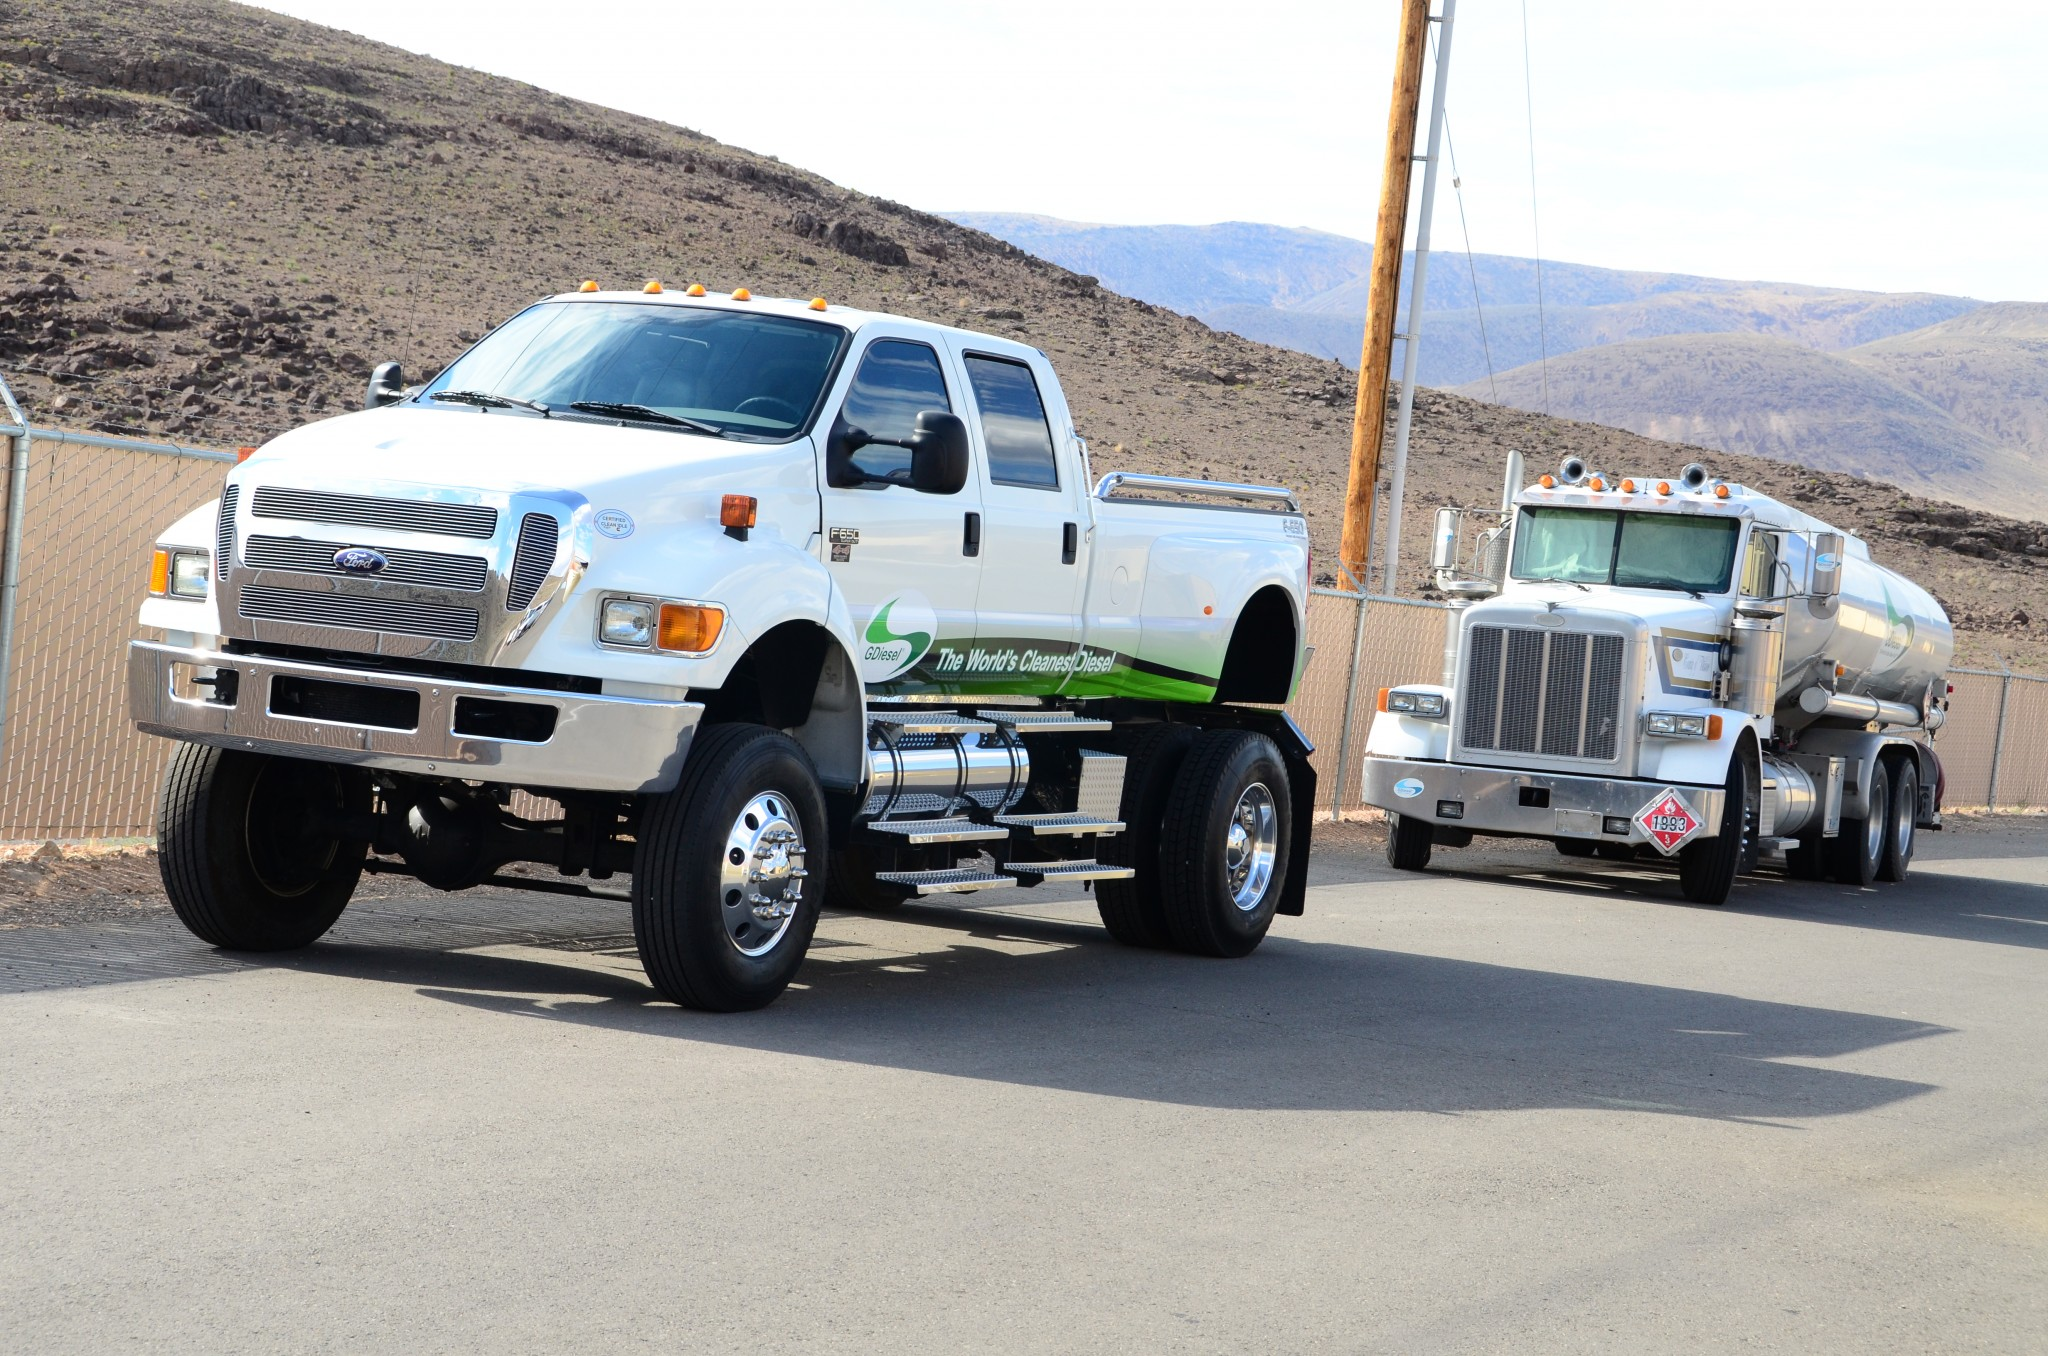 Note the size comparison between the F-650 and the GDiesel oil tanker rig.